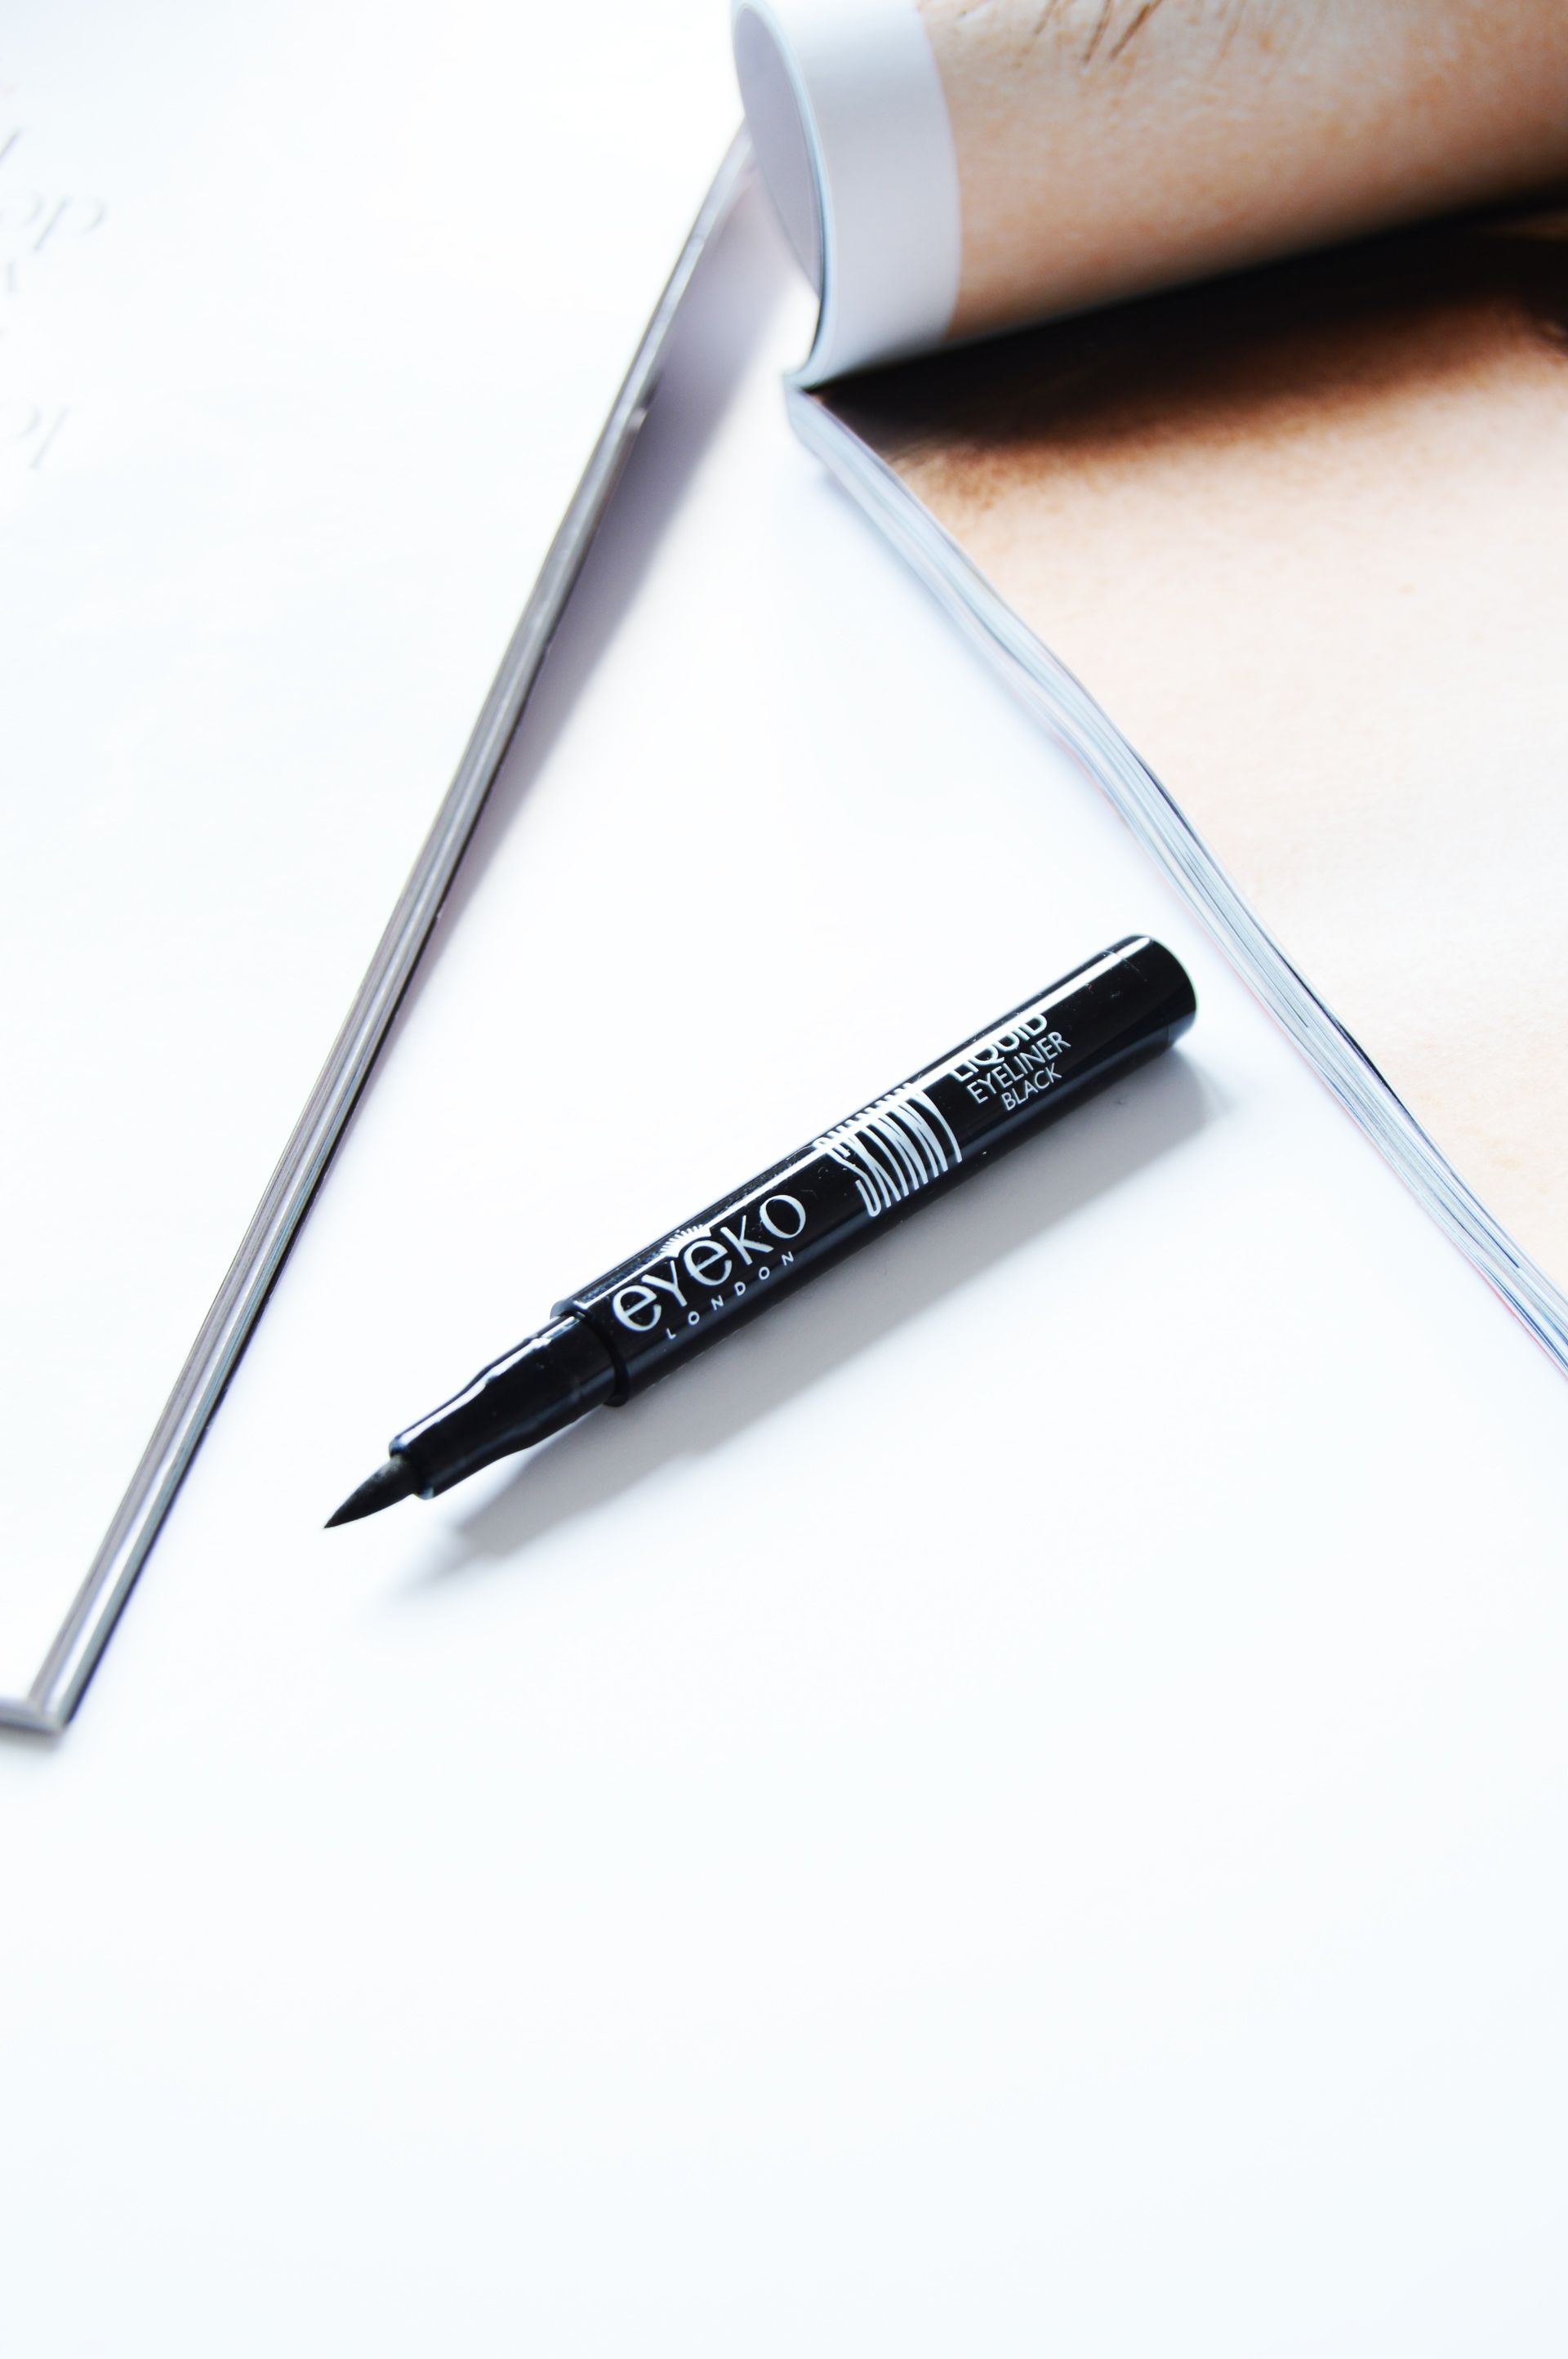 Eyeko Skinny Liquid Eyeliner promises to give smudge-free, long lasting and pitch black eyeliner. Does it live up to its claims? Eyeko Skinny Liquid Eyeliner dries so fast and in the end you'll be left with smudge free cat flick.